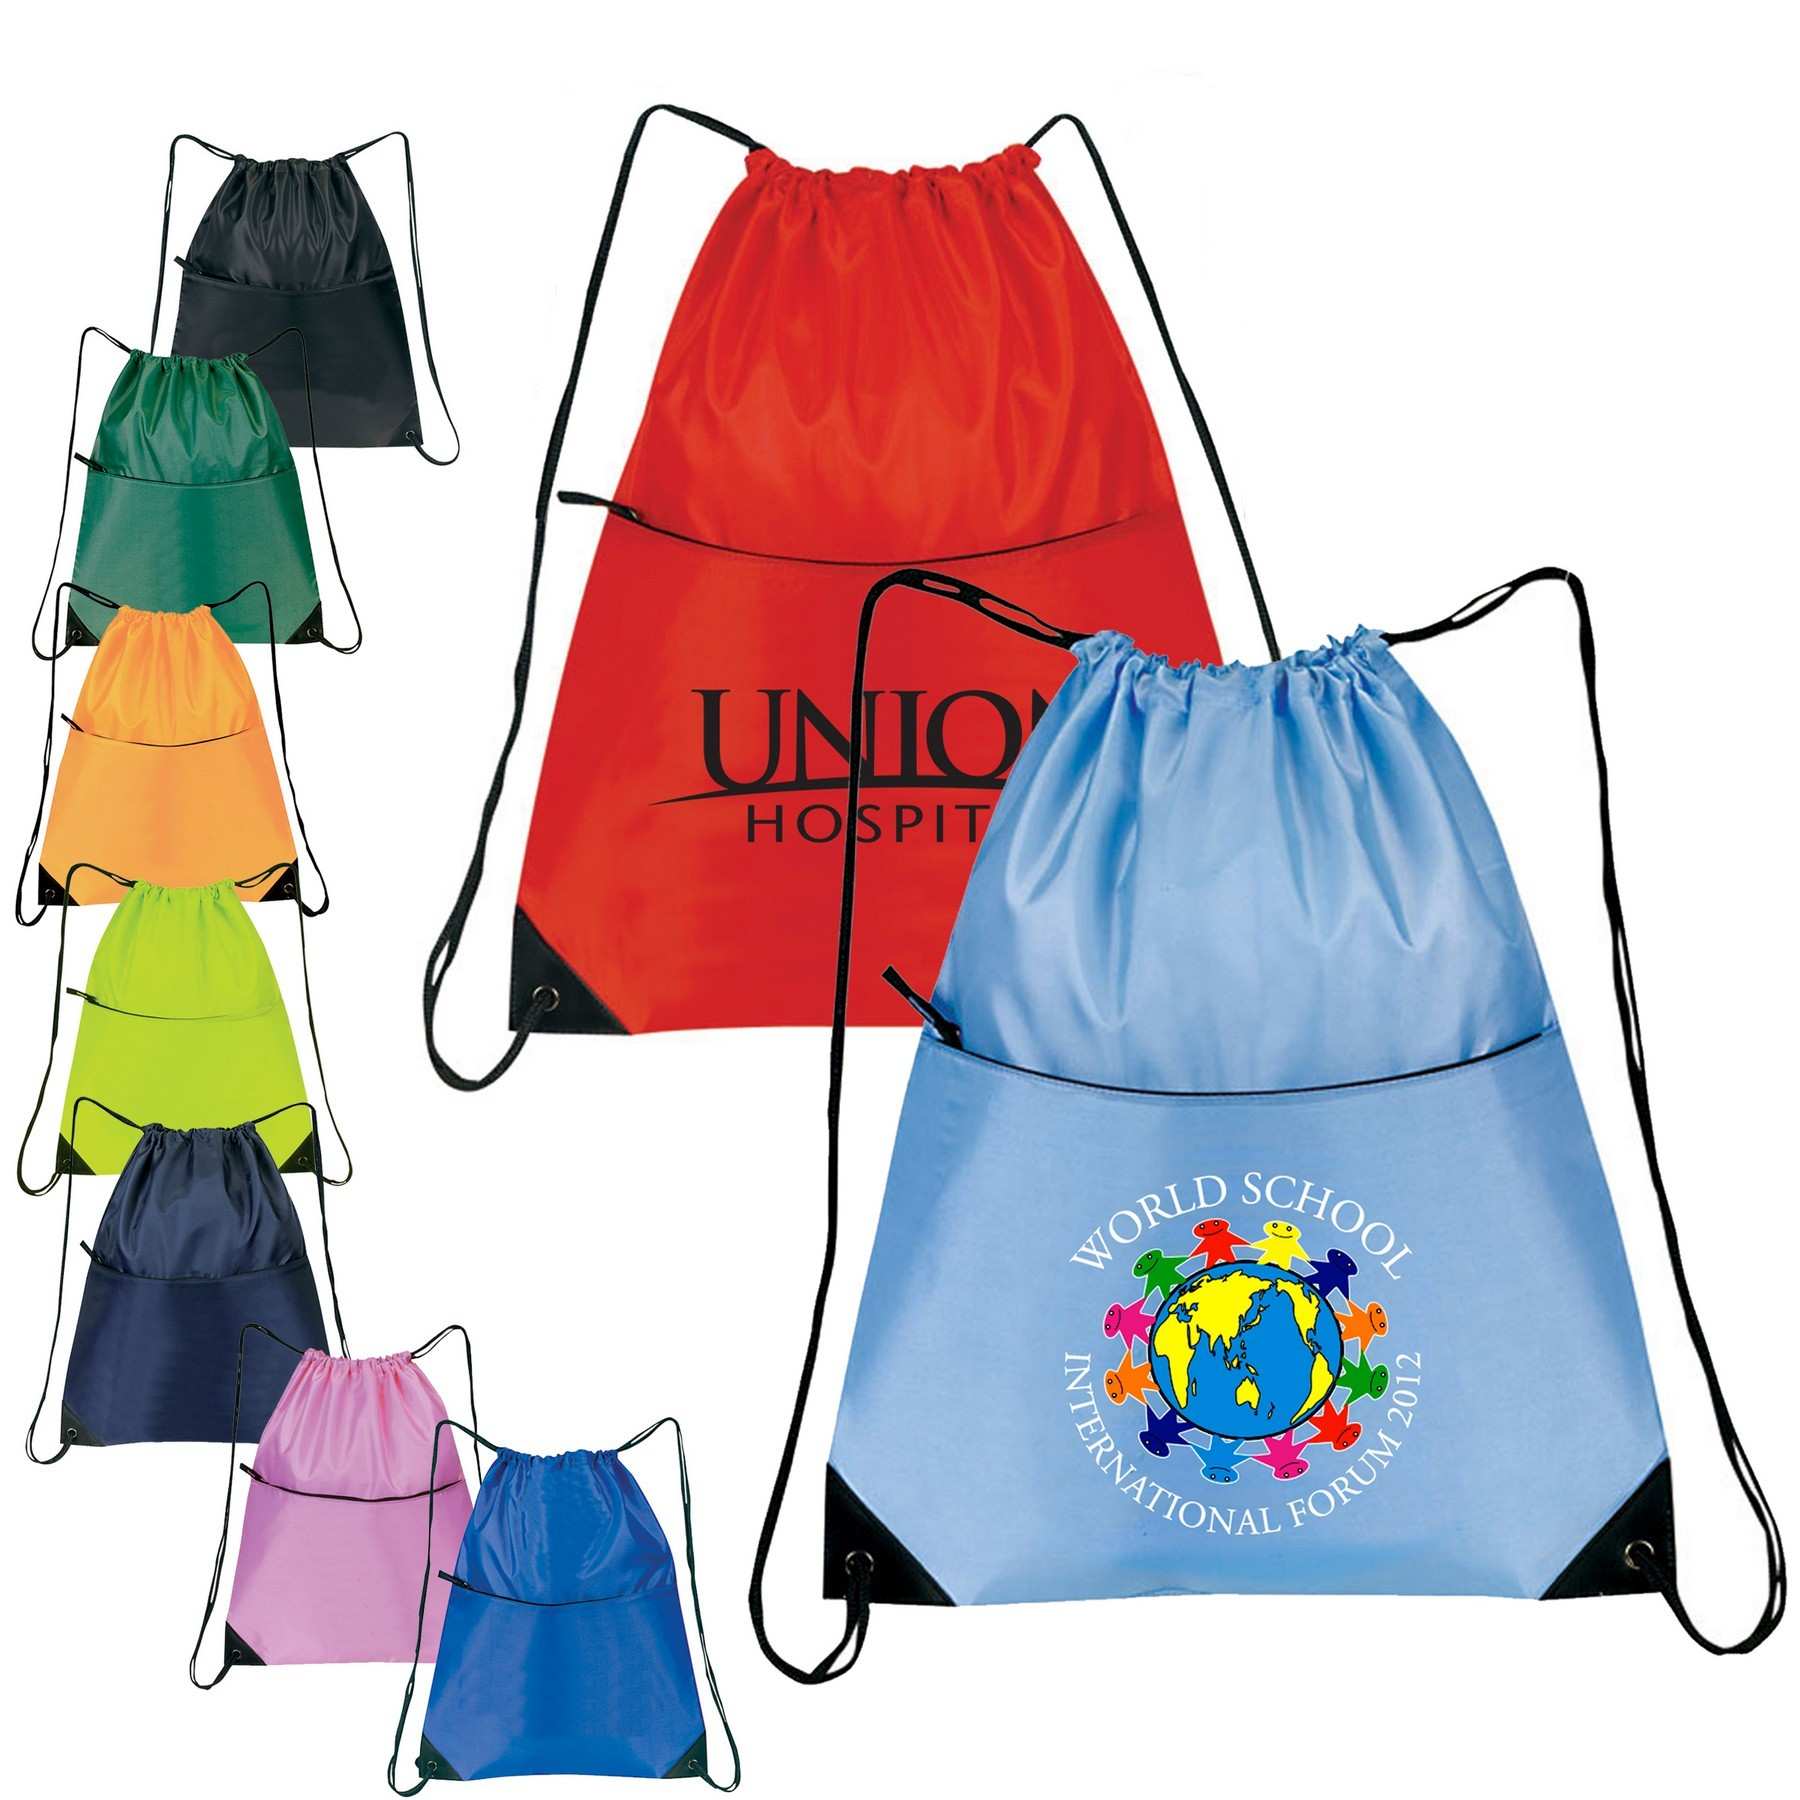 Cheap Nylon Zippered Drawstring Backpack,Cheap Nylon Zippered Drawstring Backpack Wholesaler